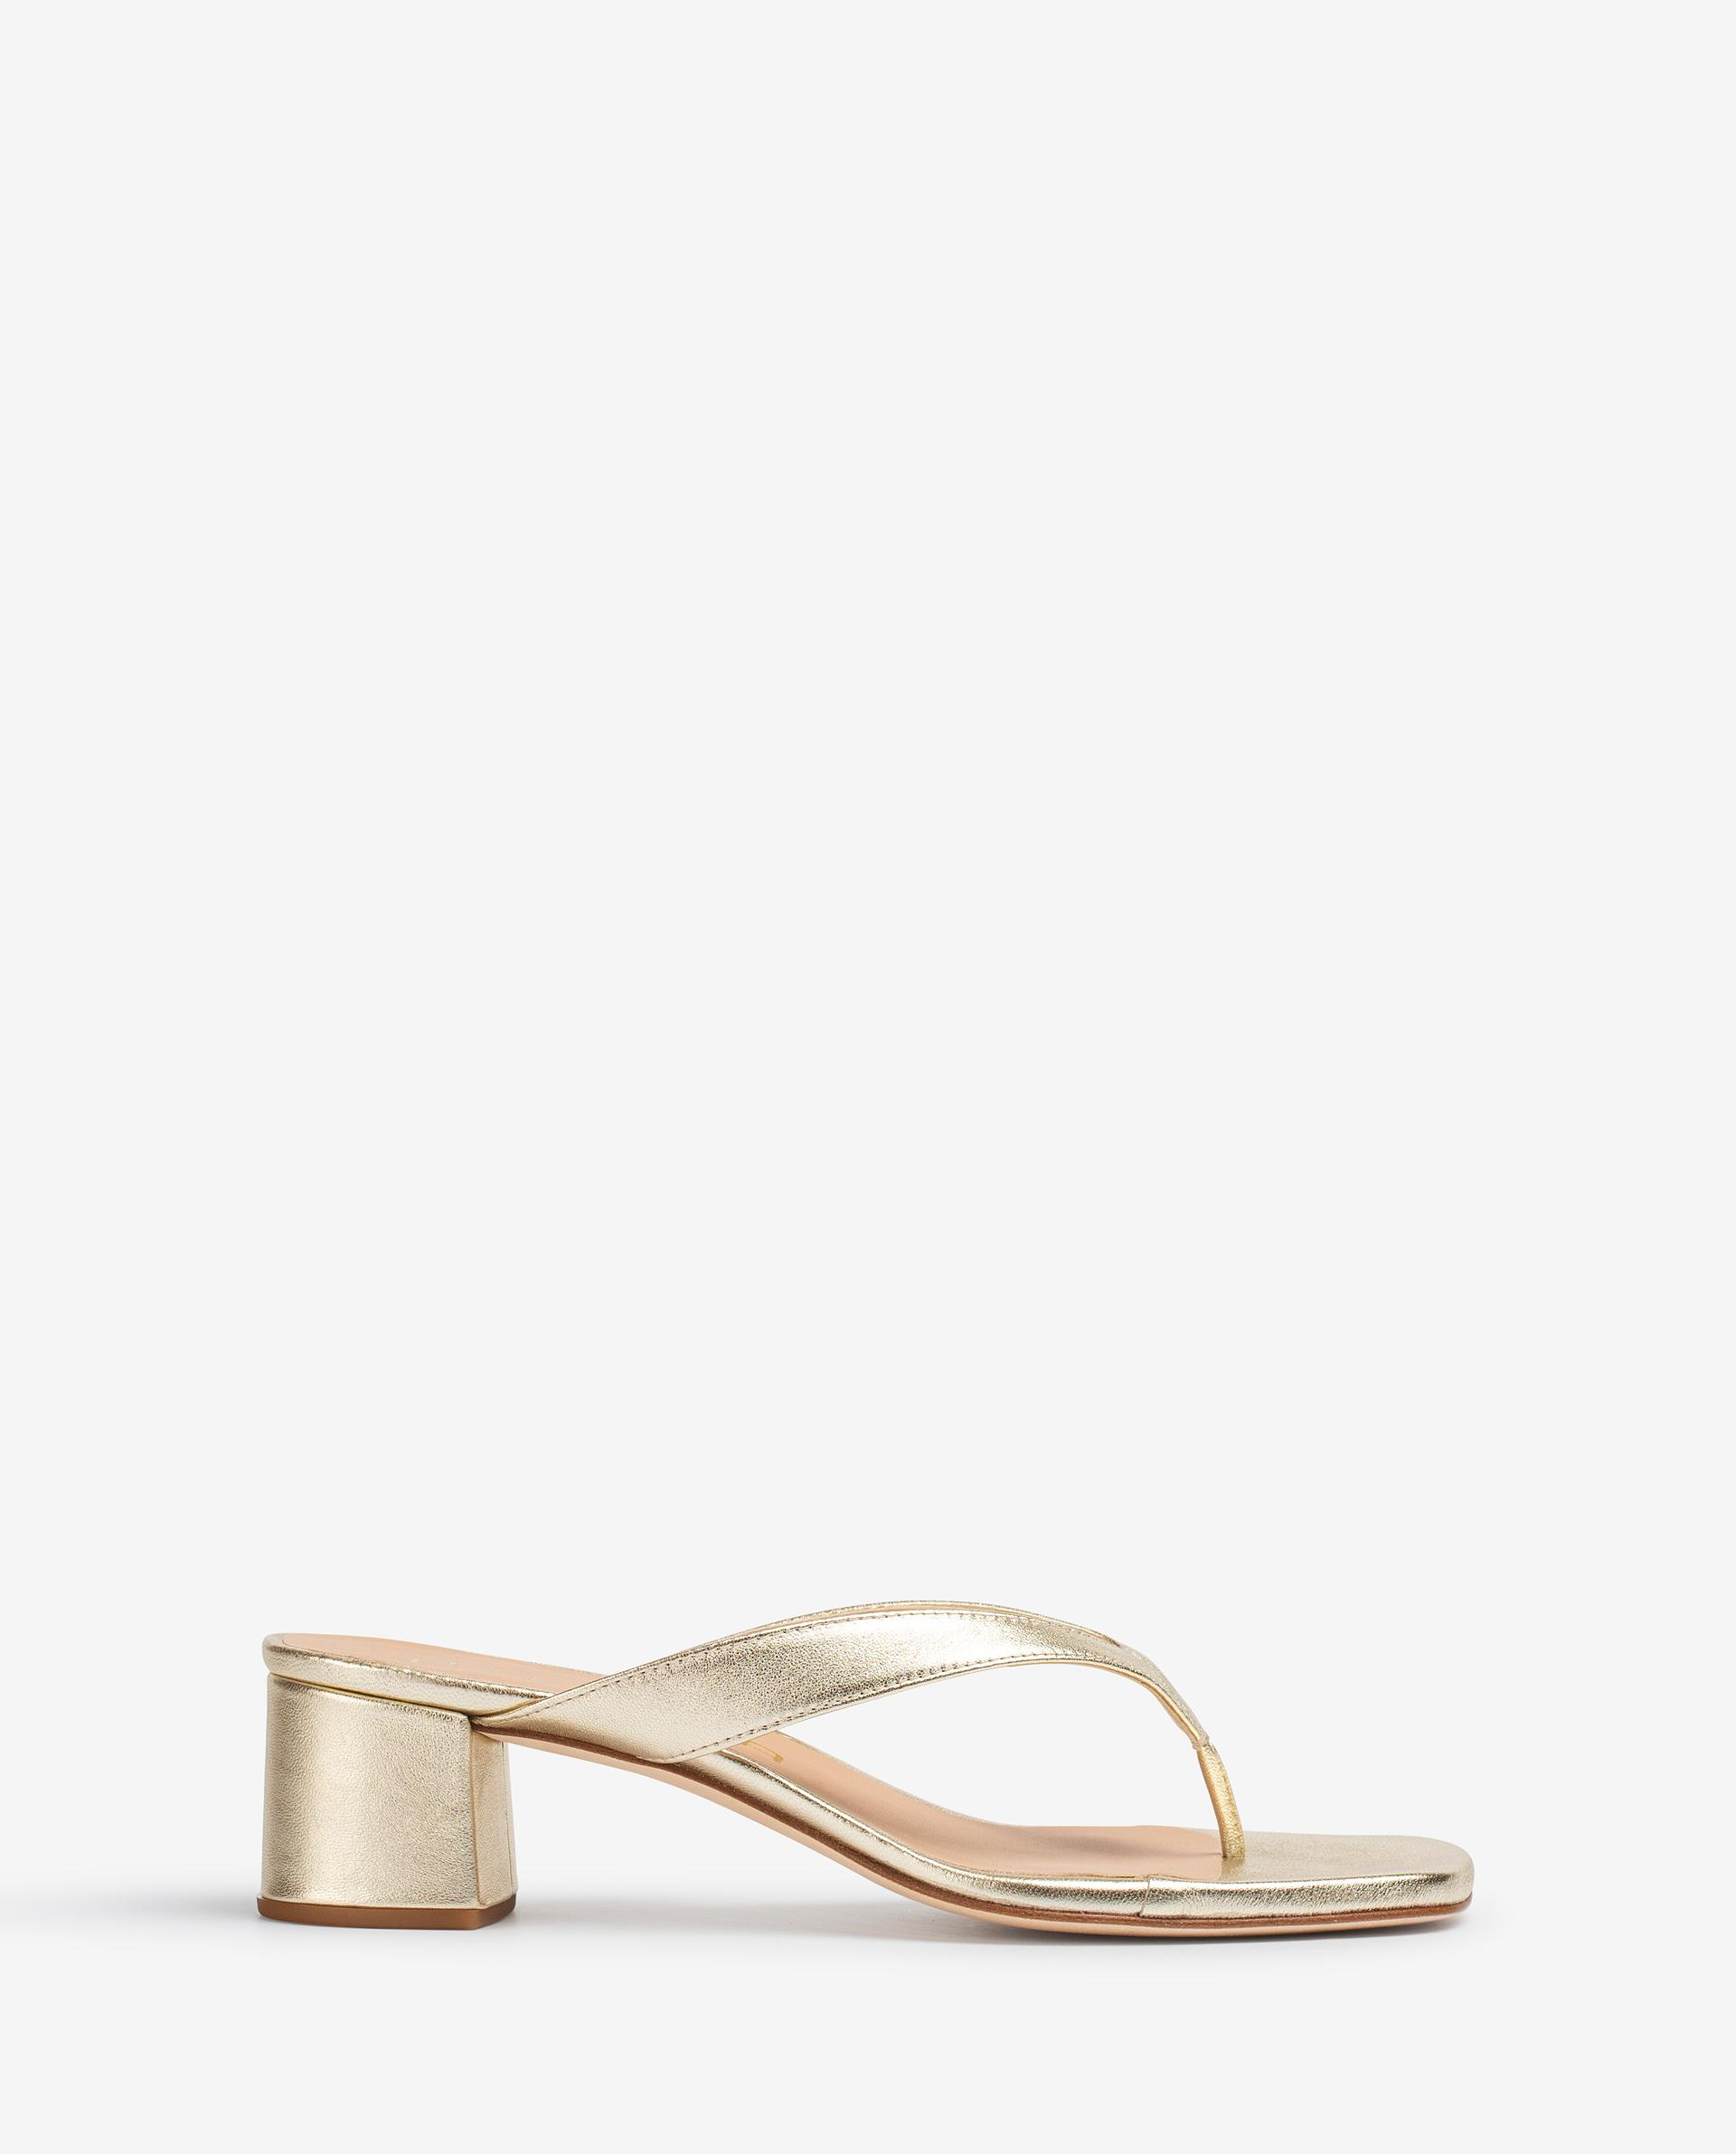 UNISA Metal effect leather thong sandals with square toe KOLMA_21_LMT 2